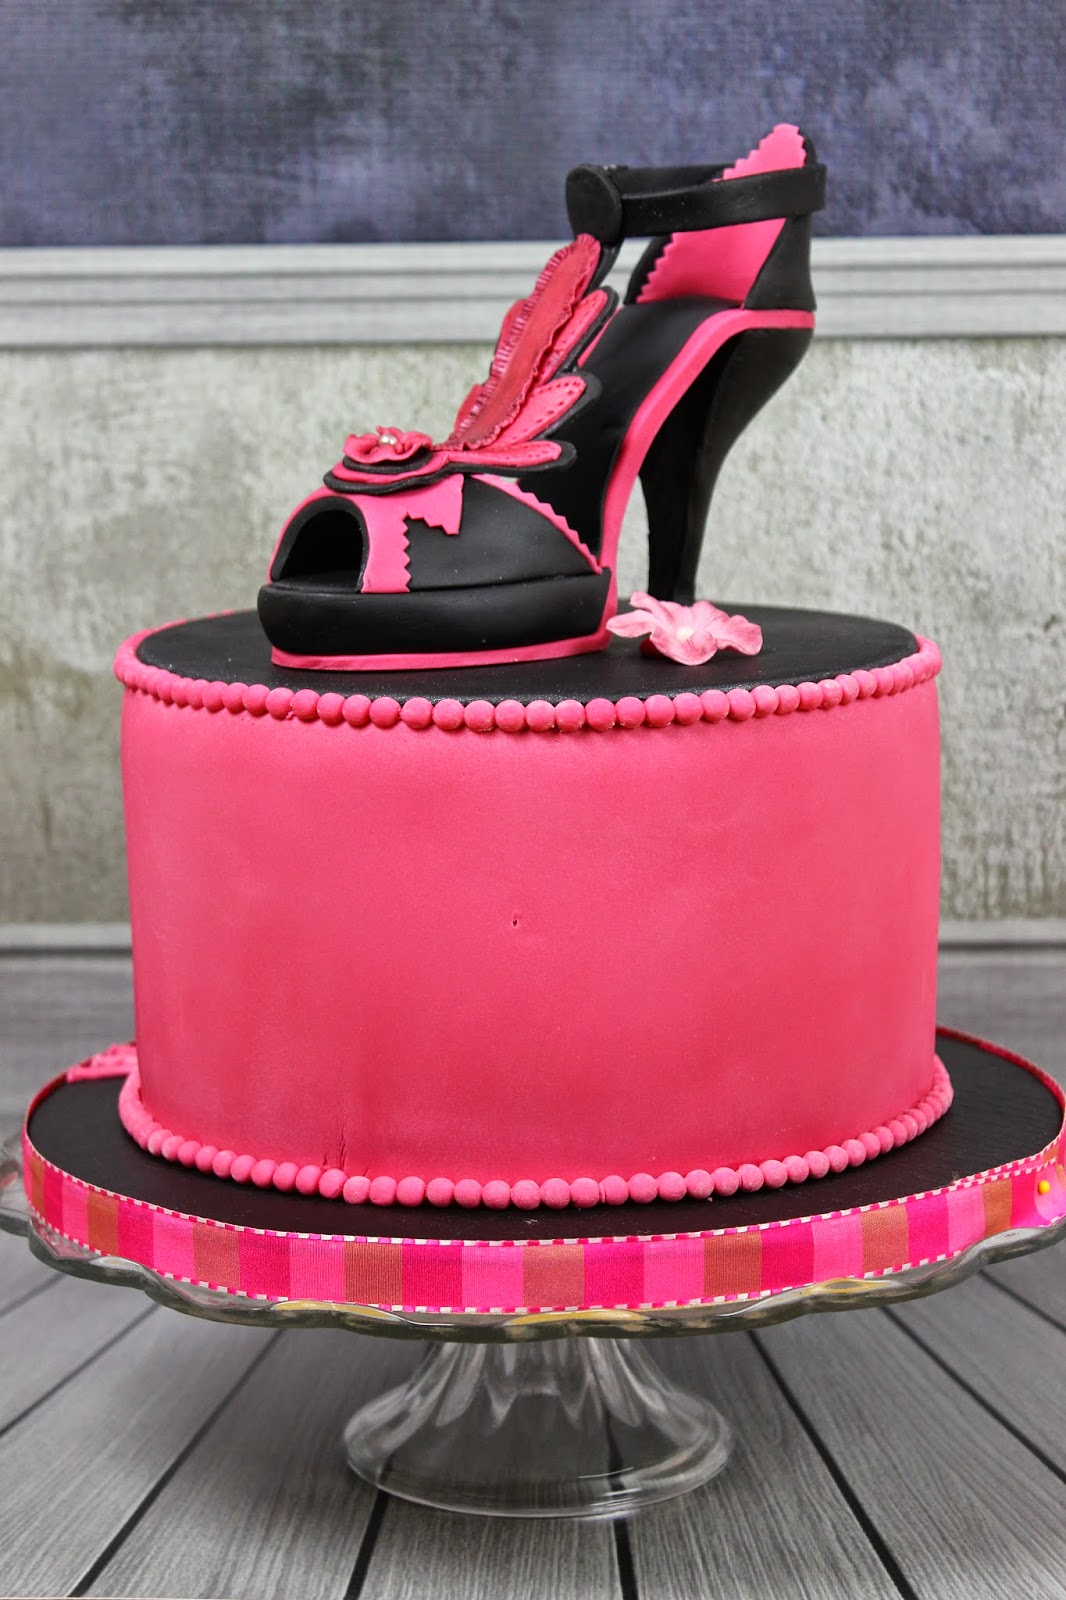 brigittes tortendesign high heels mit torte in pink. Black Bedroom Furniture Sets. Home Design Ideas